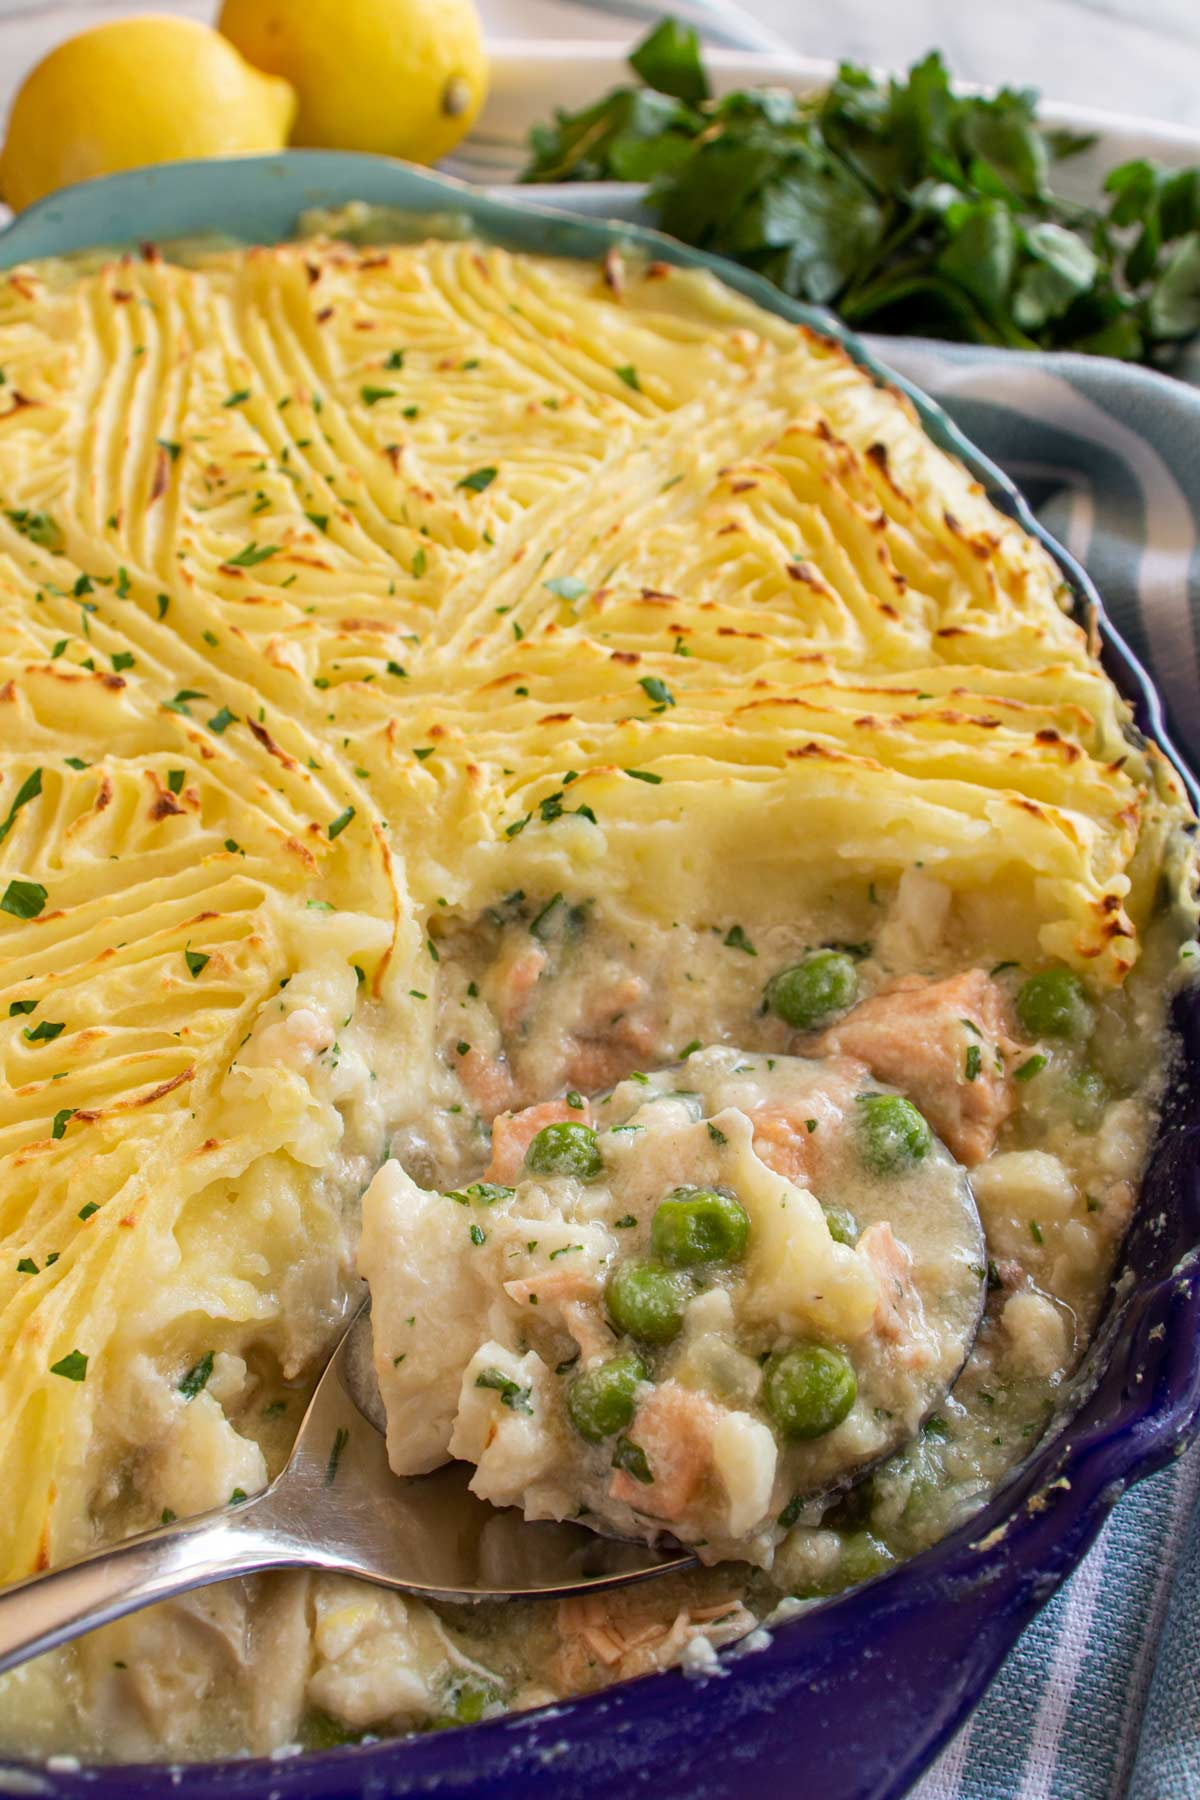 Fish pie with peas in an oval baking dish with a spoon scooping some out.